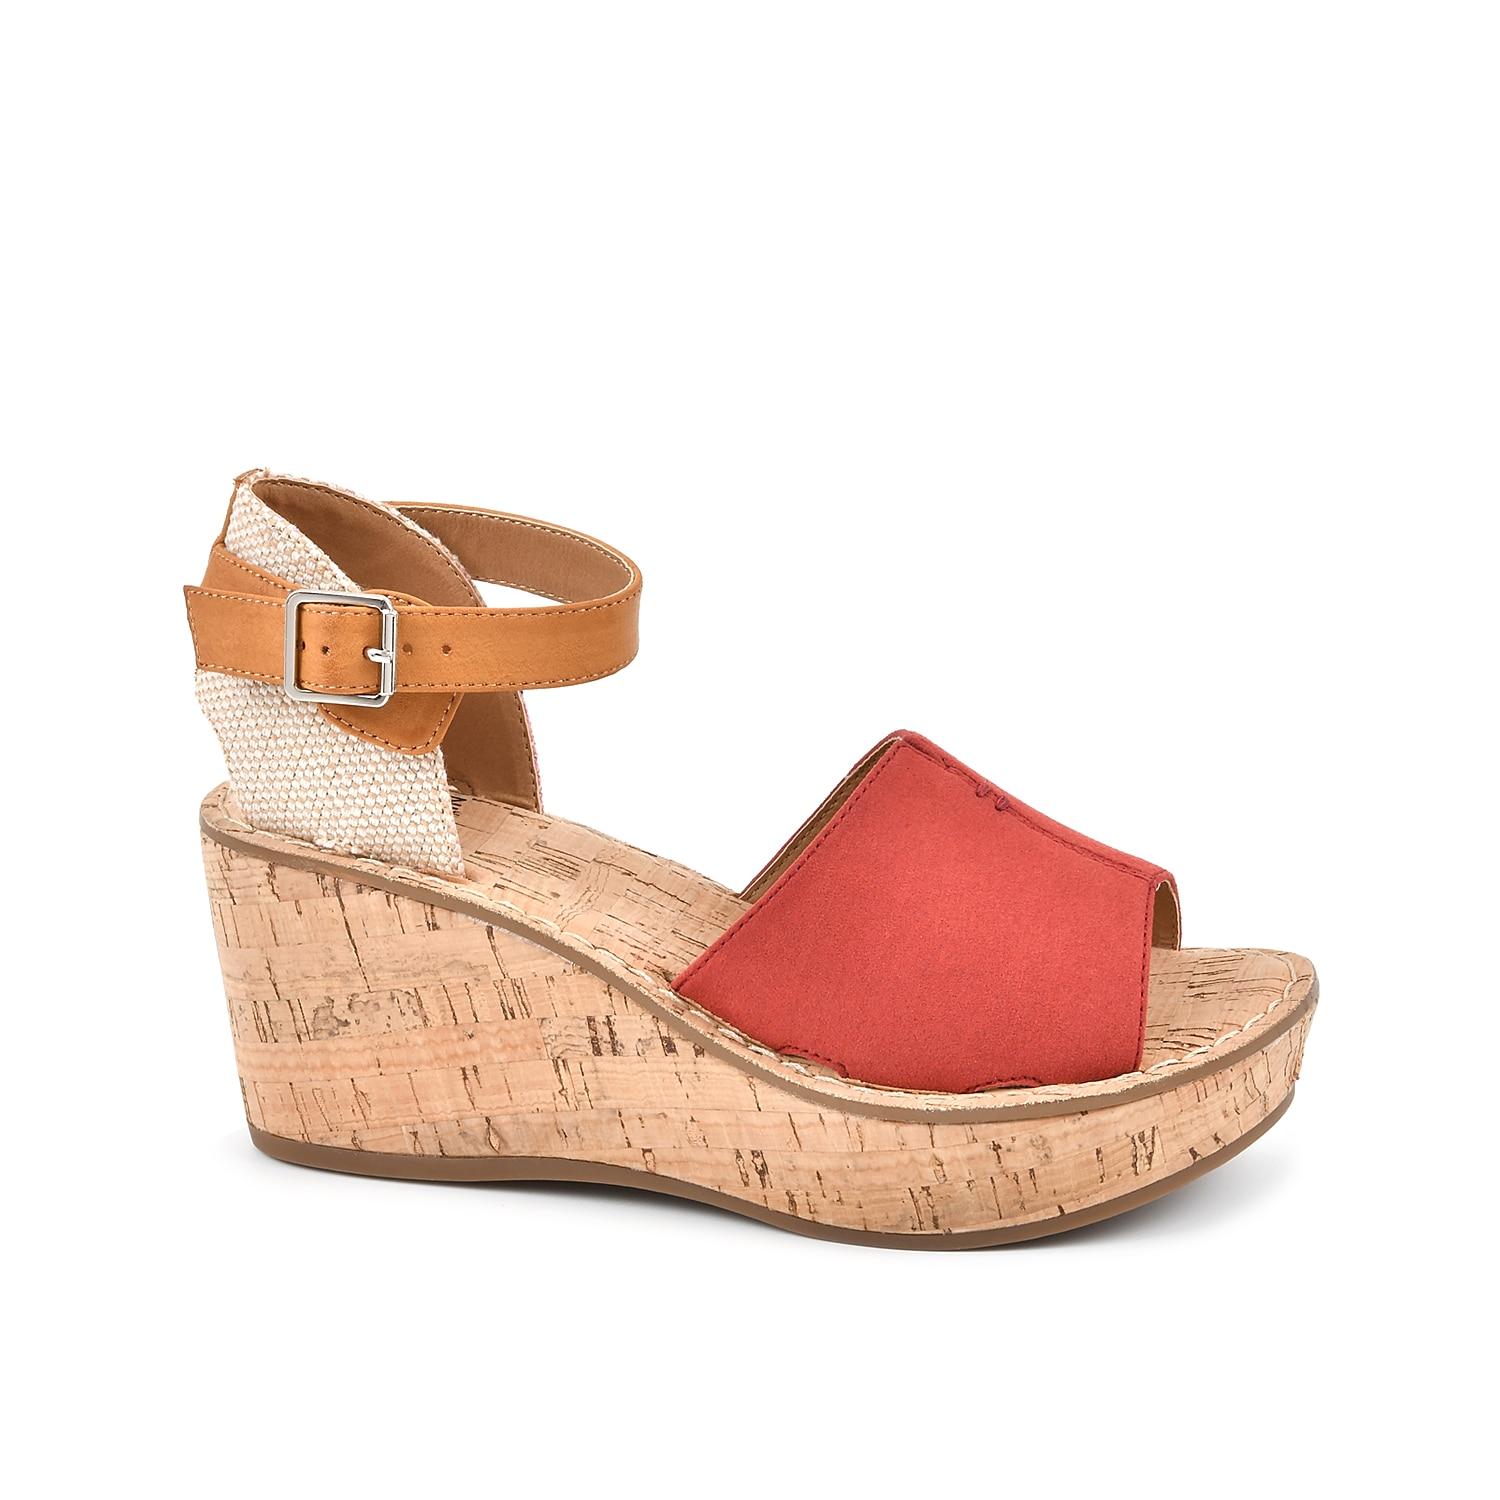 Your warm weather style will get an instant upgrade with the Sarabella wedge sandal from White Mountain. This two-piece features a cork wedge and trendy ankle strap for versatile appeal.